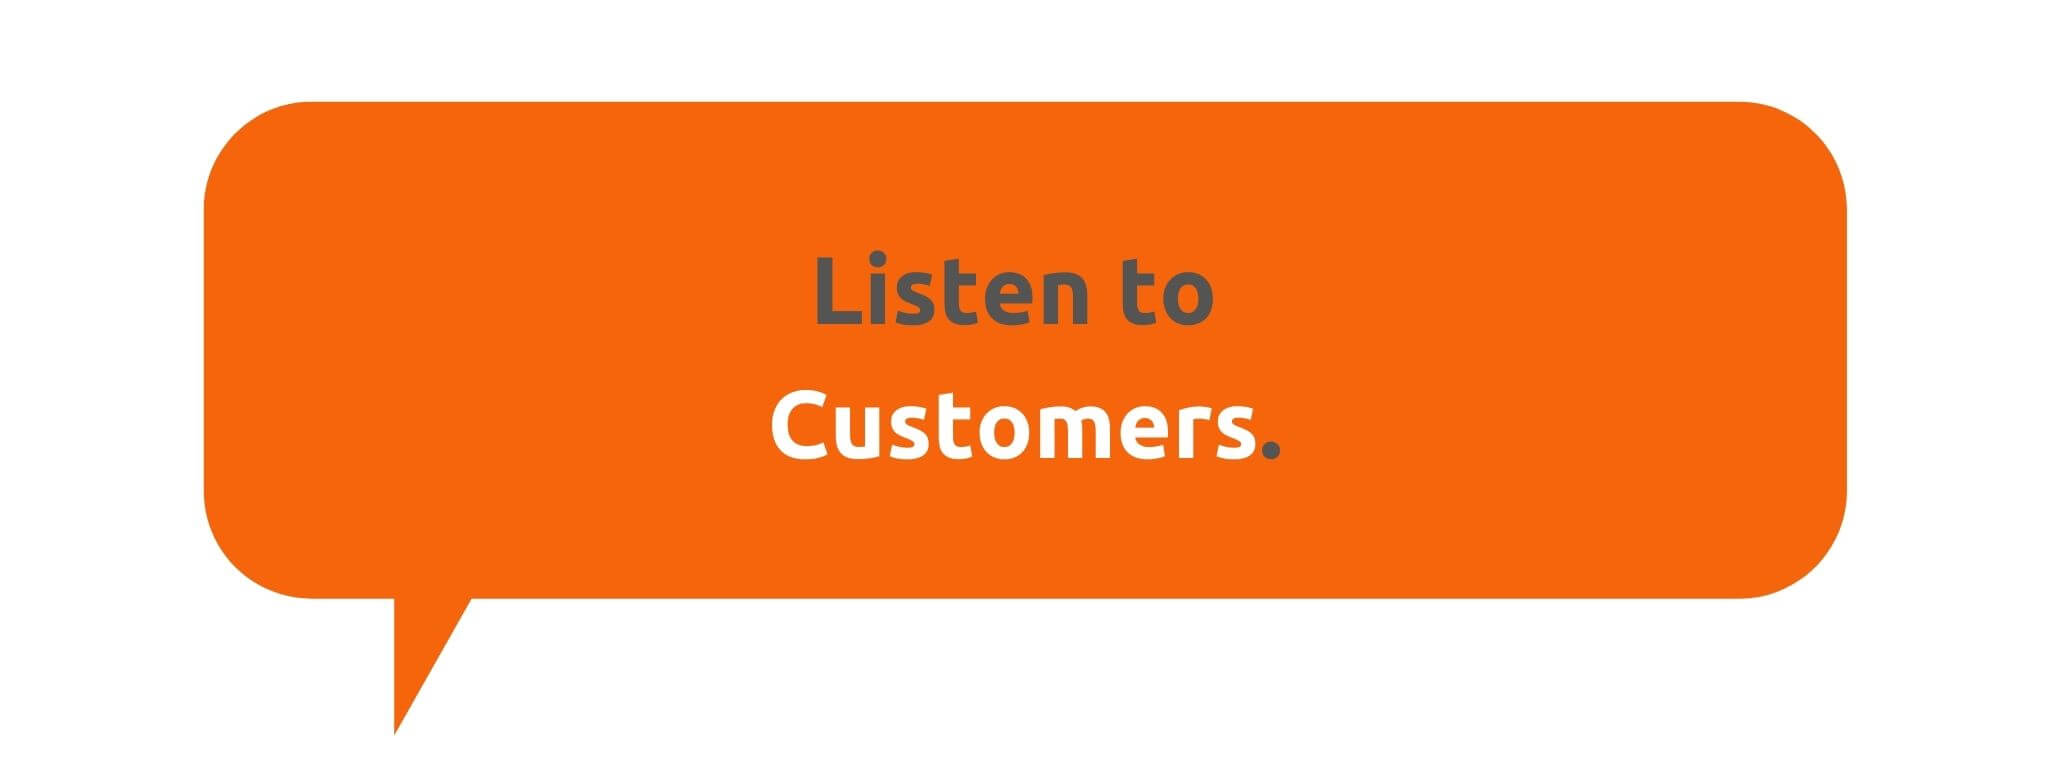 Listen to Customers - How to Run a Customer-Centric Business - Replyco Helpdesk Software for eCommerce